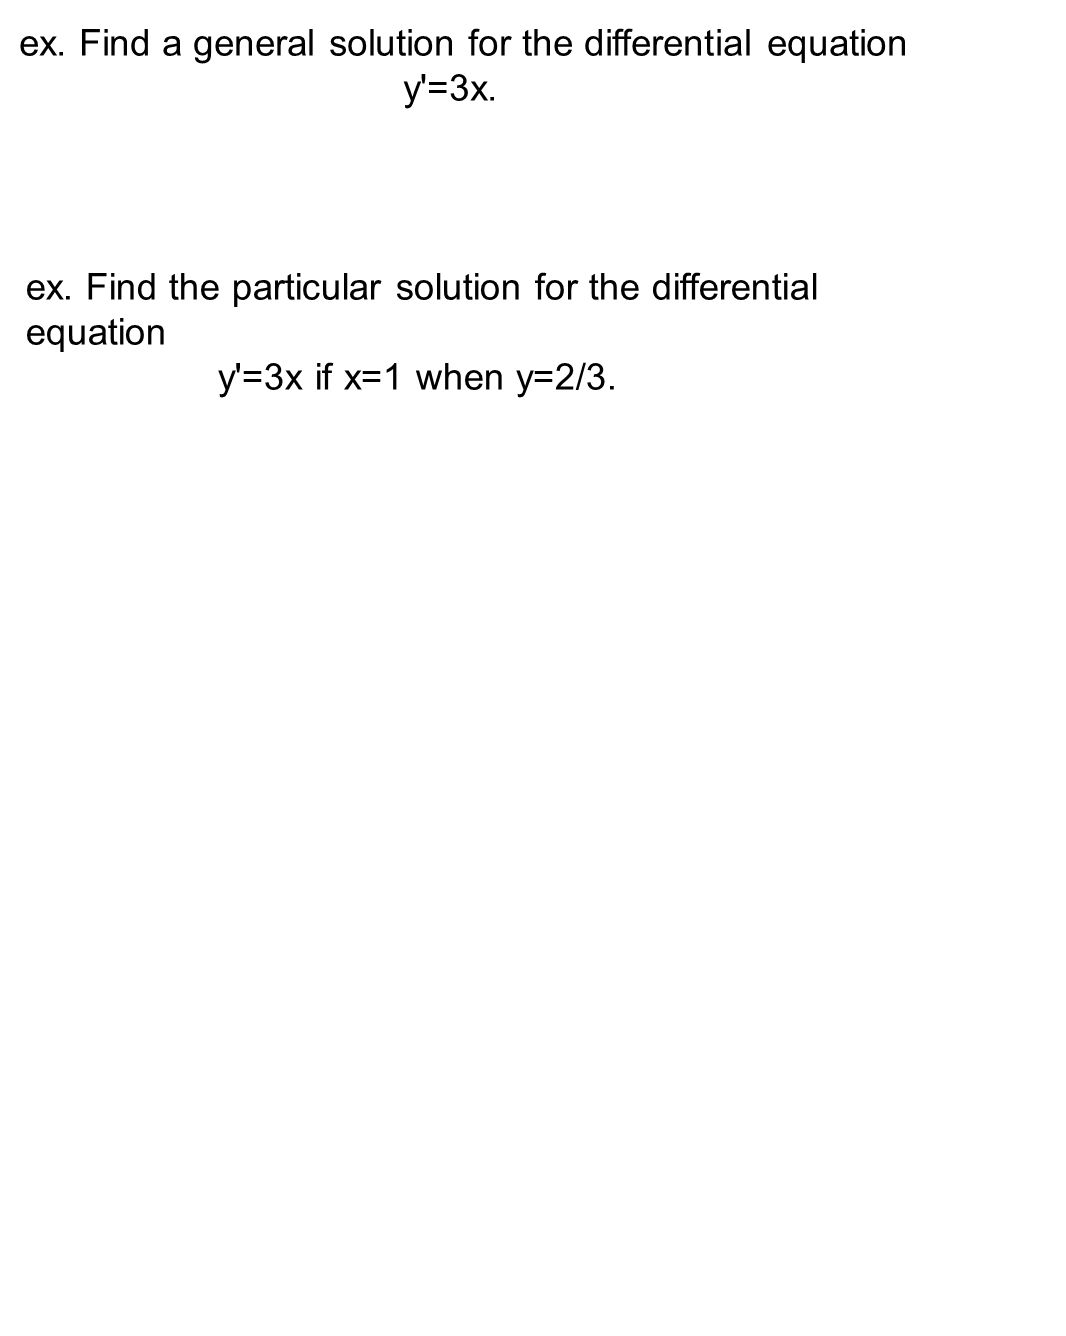 ex. Find a general solution for the differential equation y =3x.